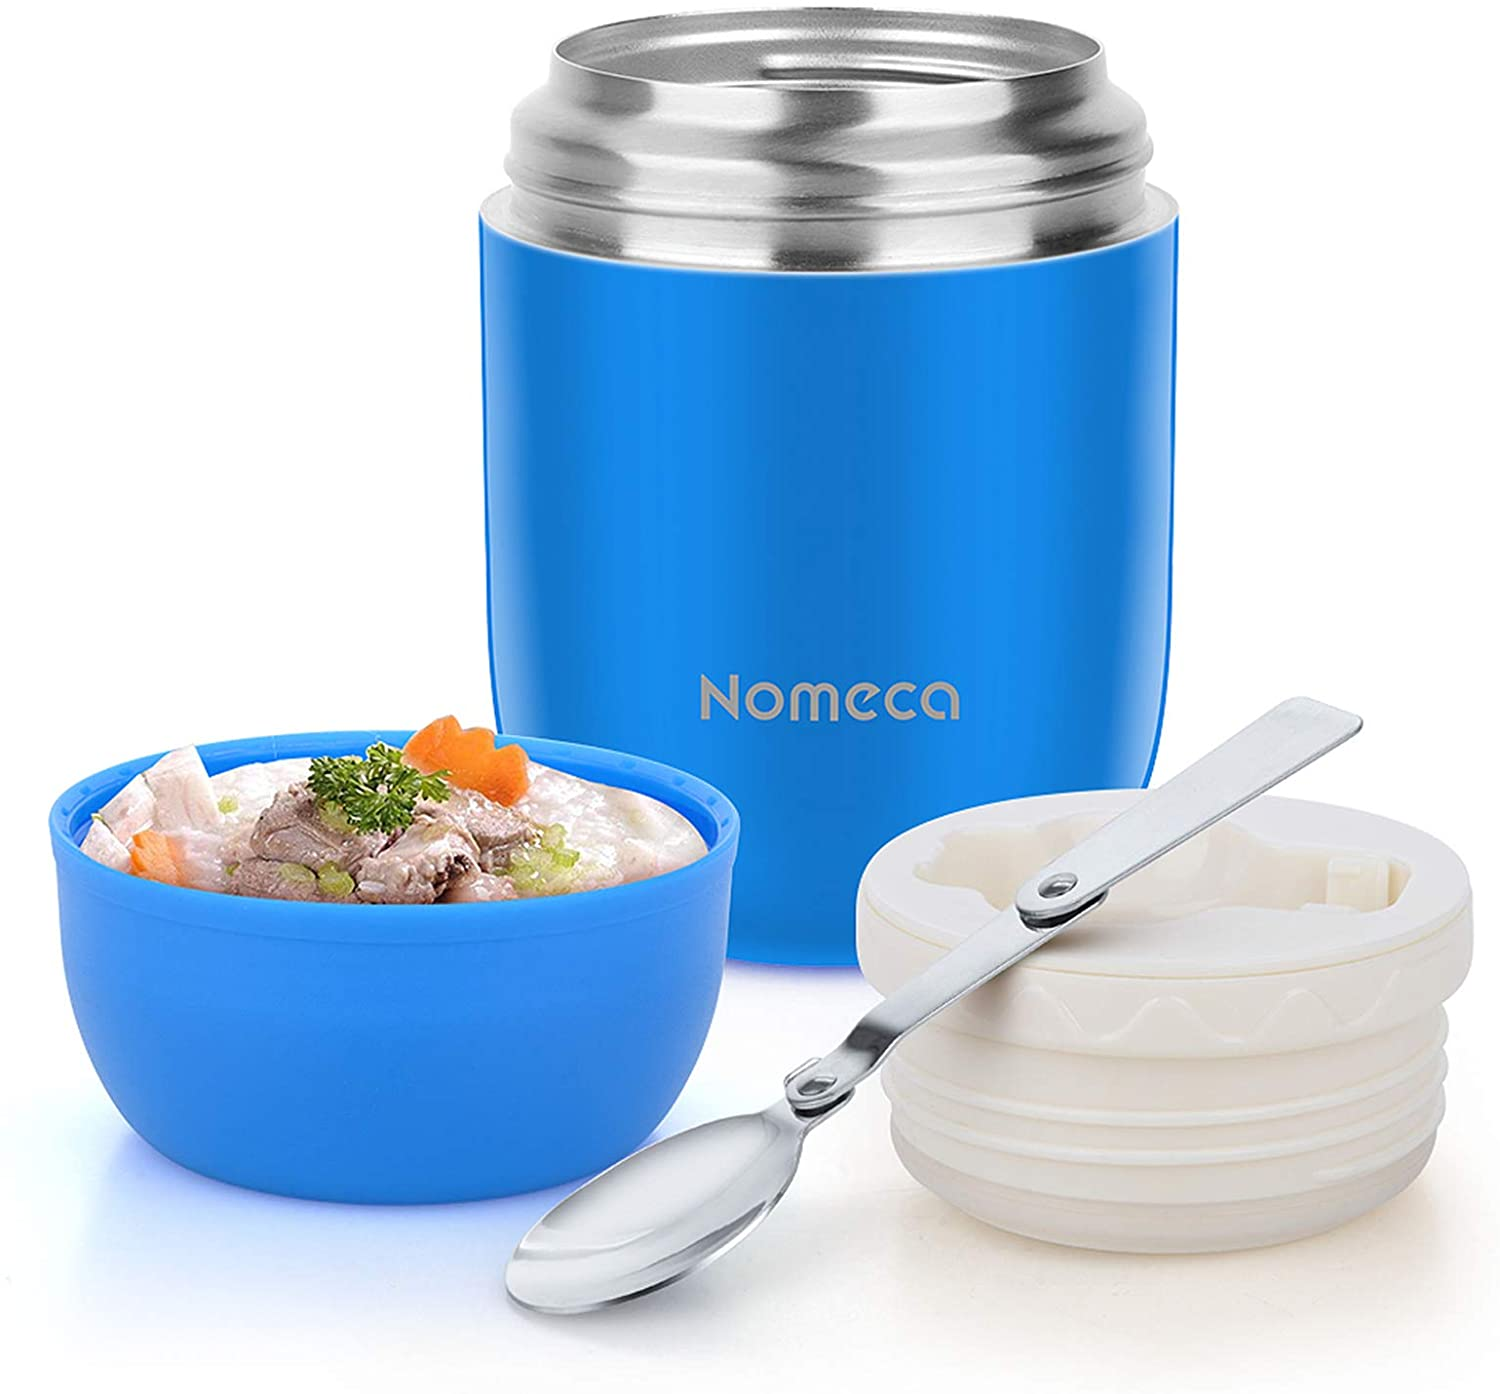 Insulated Lunch Container Hot Food Jar - Wide Mouth Thermoses for Hot Soup Nomeca 16Oz Vacuum Food Container Stainless Steel Thermal Soup Containers with Spoon for Kids Adult Gifts School Office, Blue